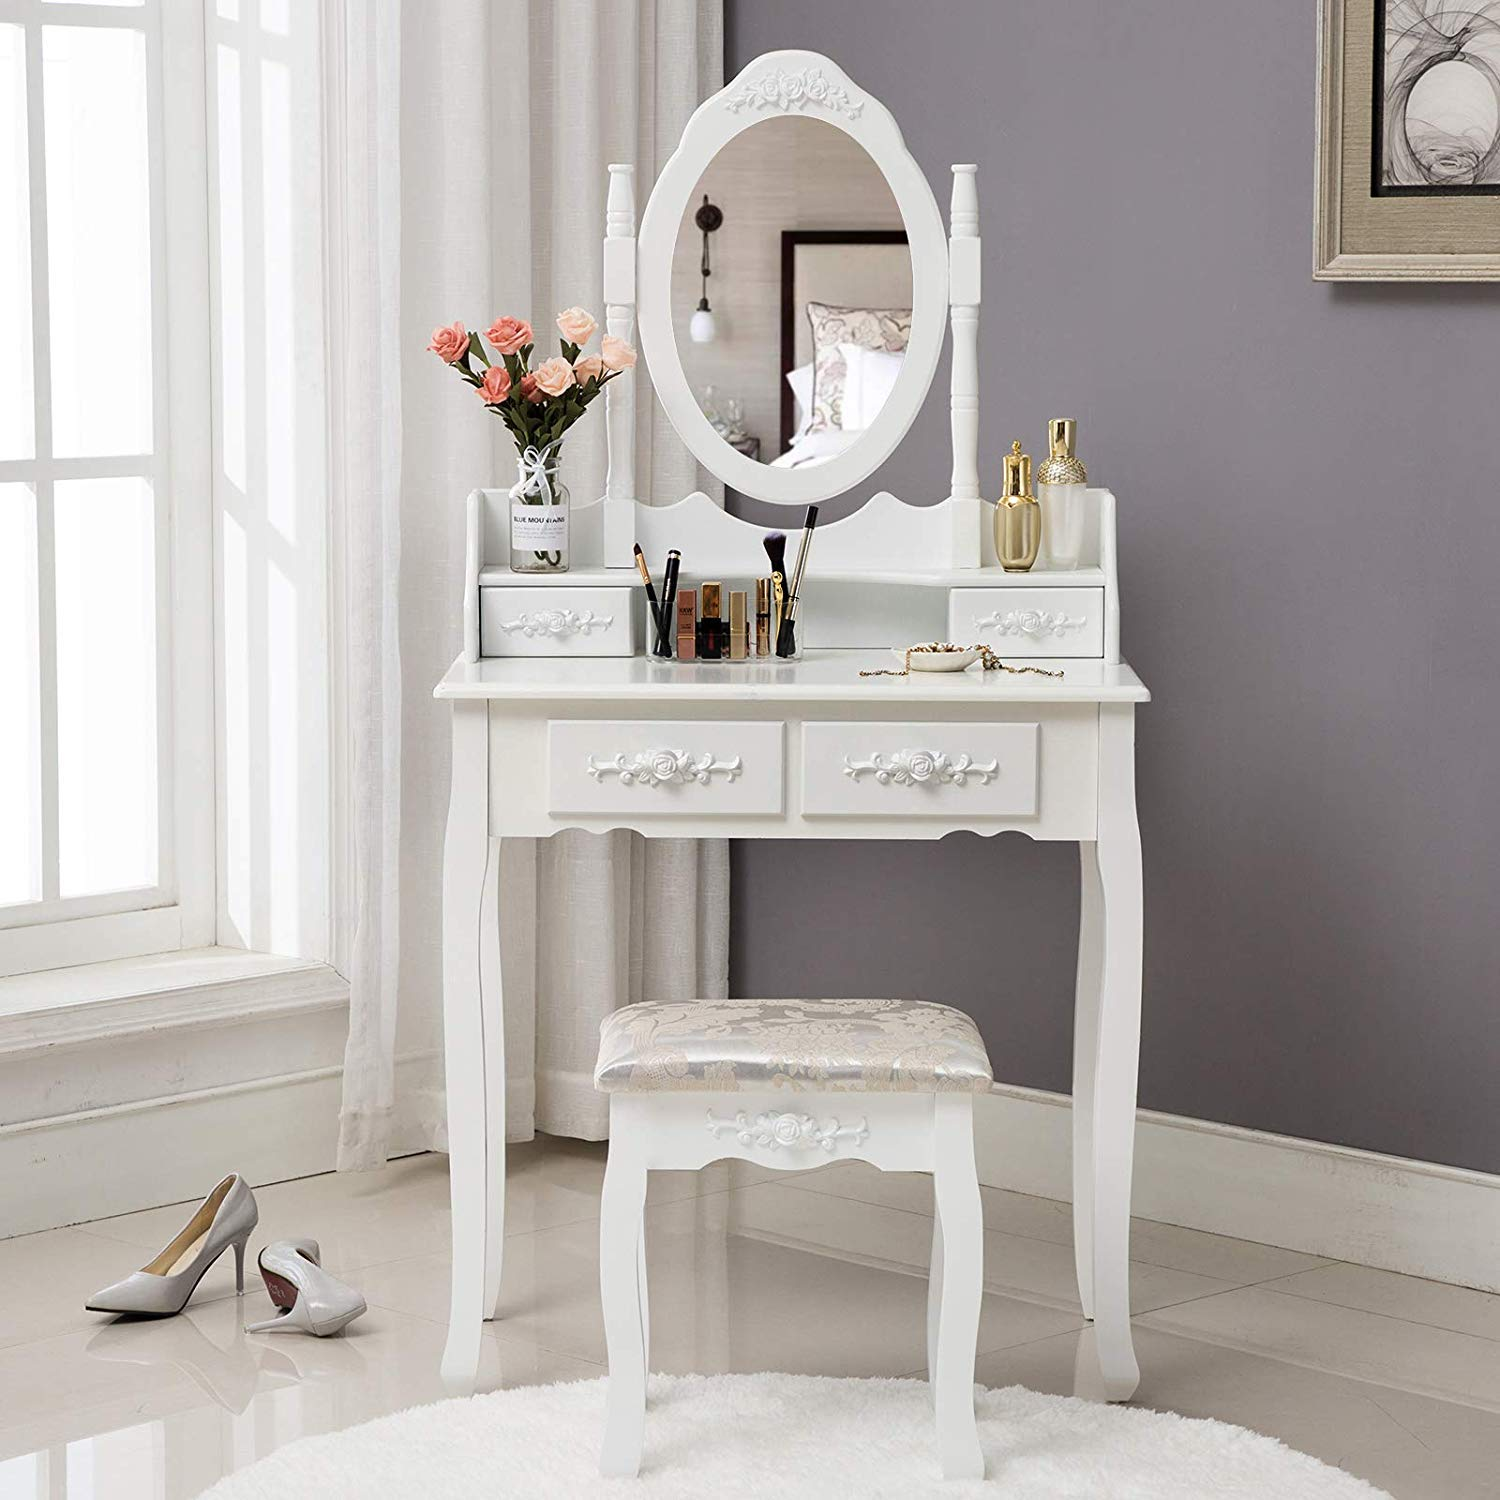 Unihome Makeup Table Vanity Table With Mirror Small Dressing